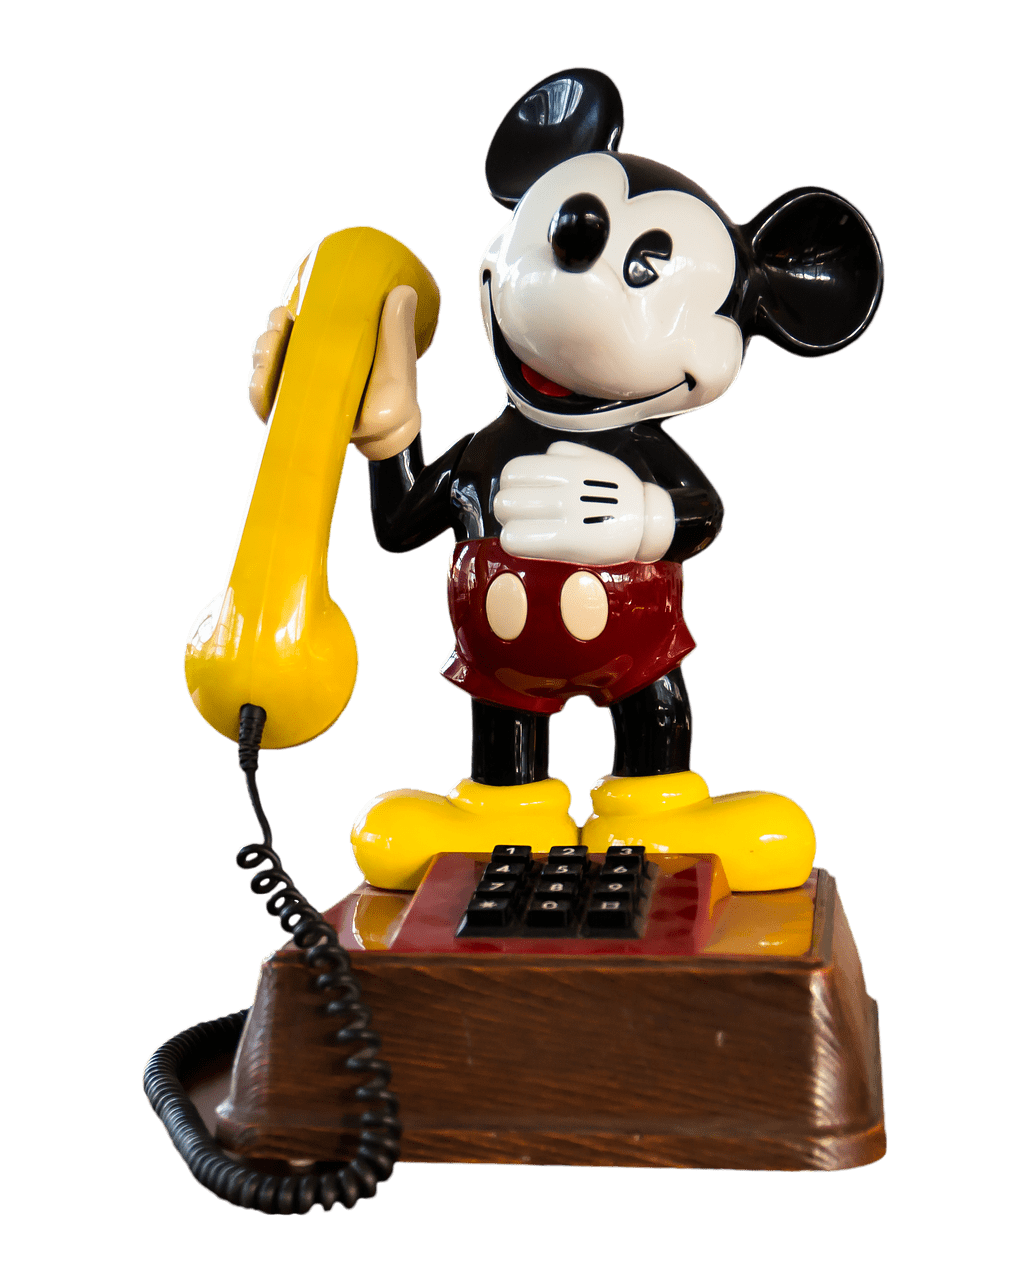 Telephone clipart toy phone. Vintage mickey mouse transparent